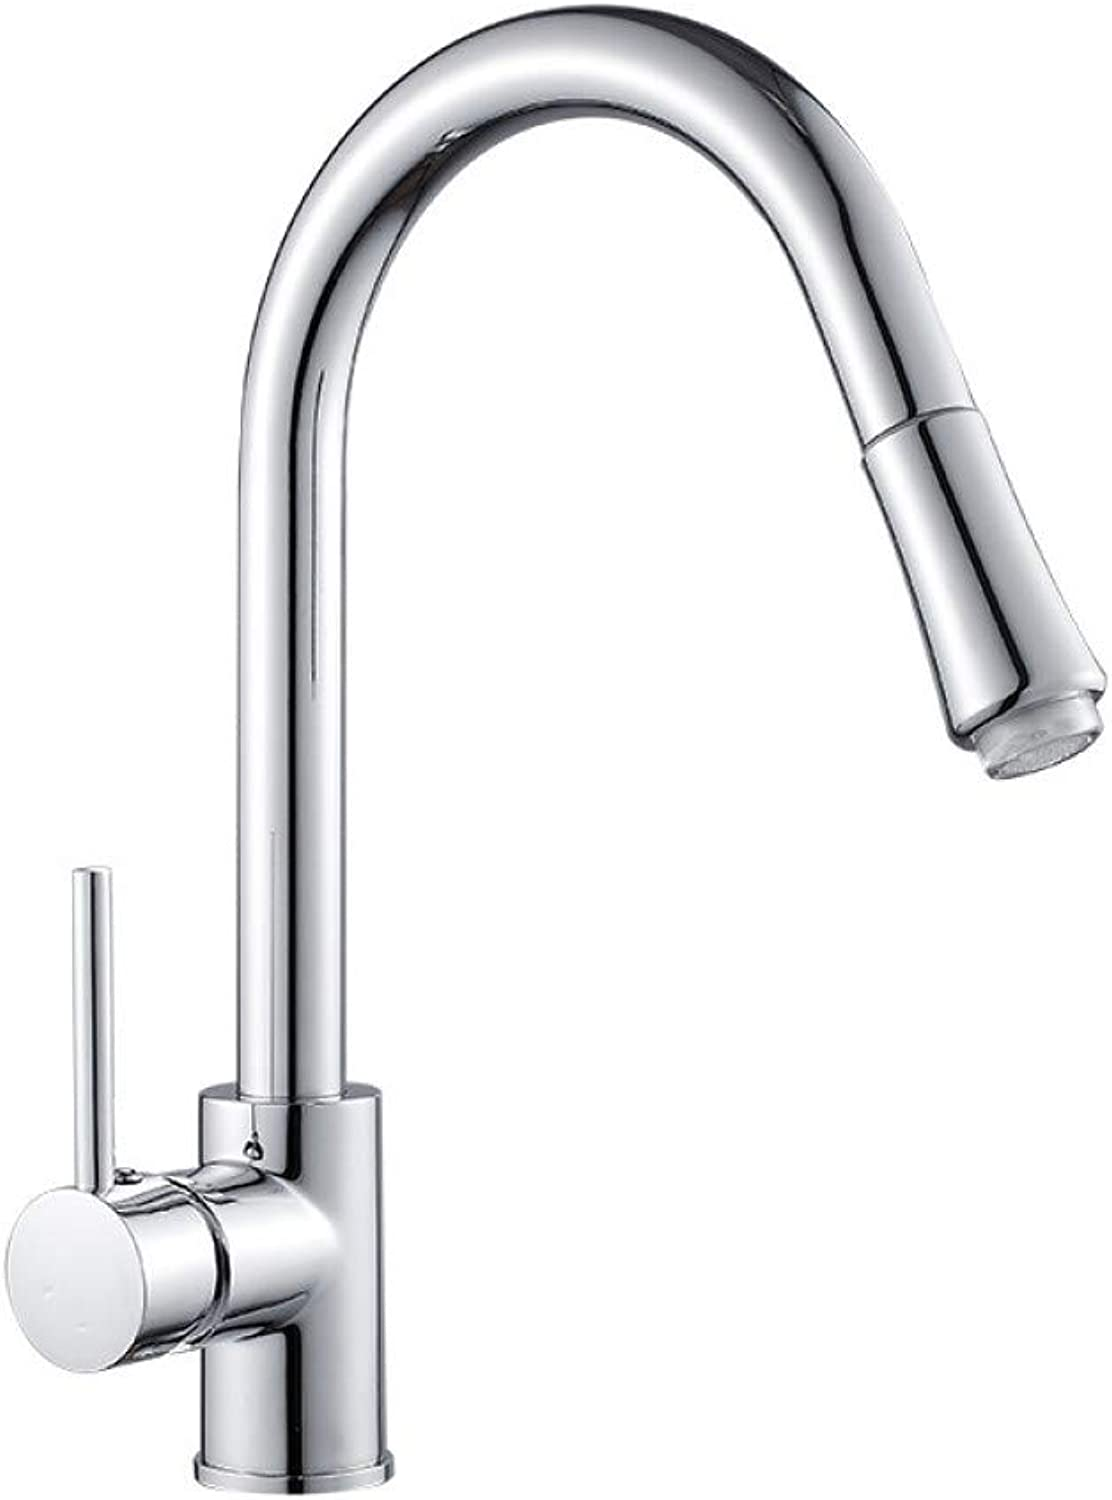 YHSGY Kitchen Taps Copper Kitchen Led Pull-Type Faucet Sink Sink Hot and Cold redating Plating Faucet